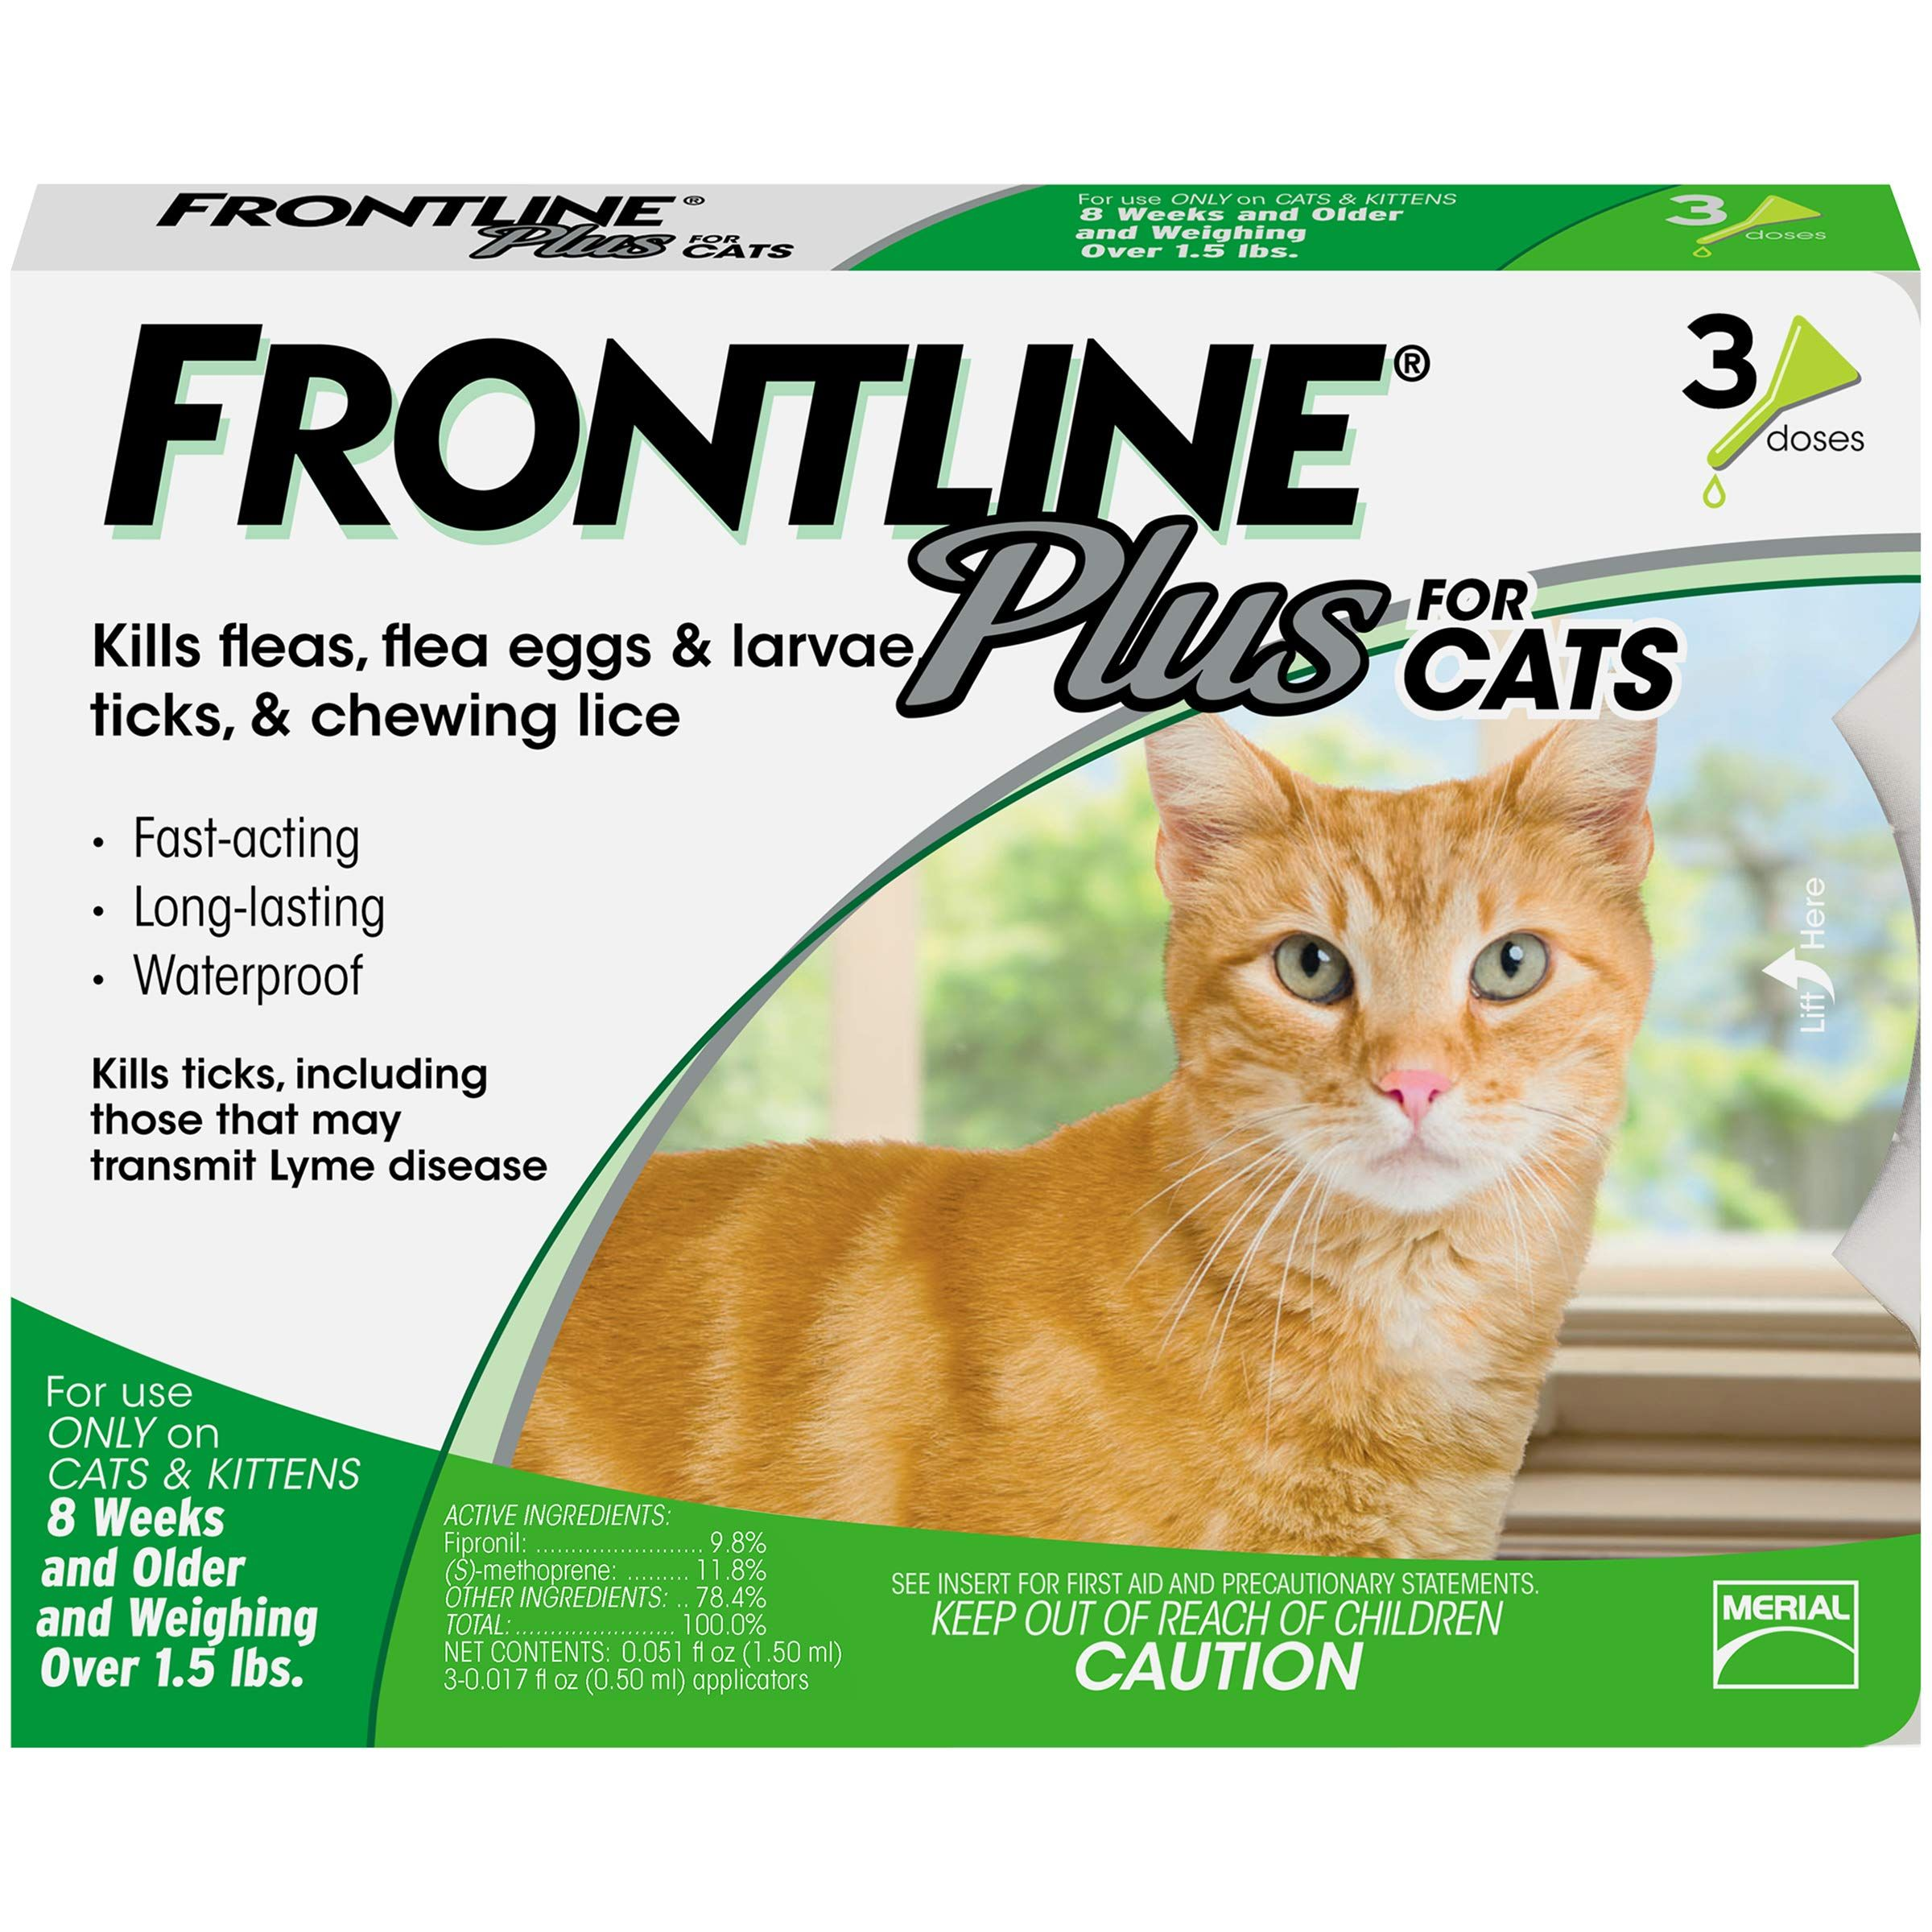 Frontline Plus For Cats 3 Month Frontline Plus For Cats Tick Treatment For Cats Cat Fleas